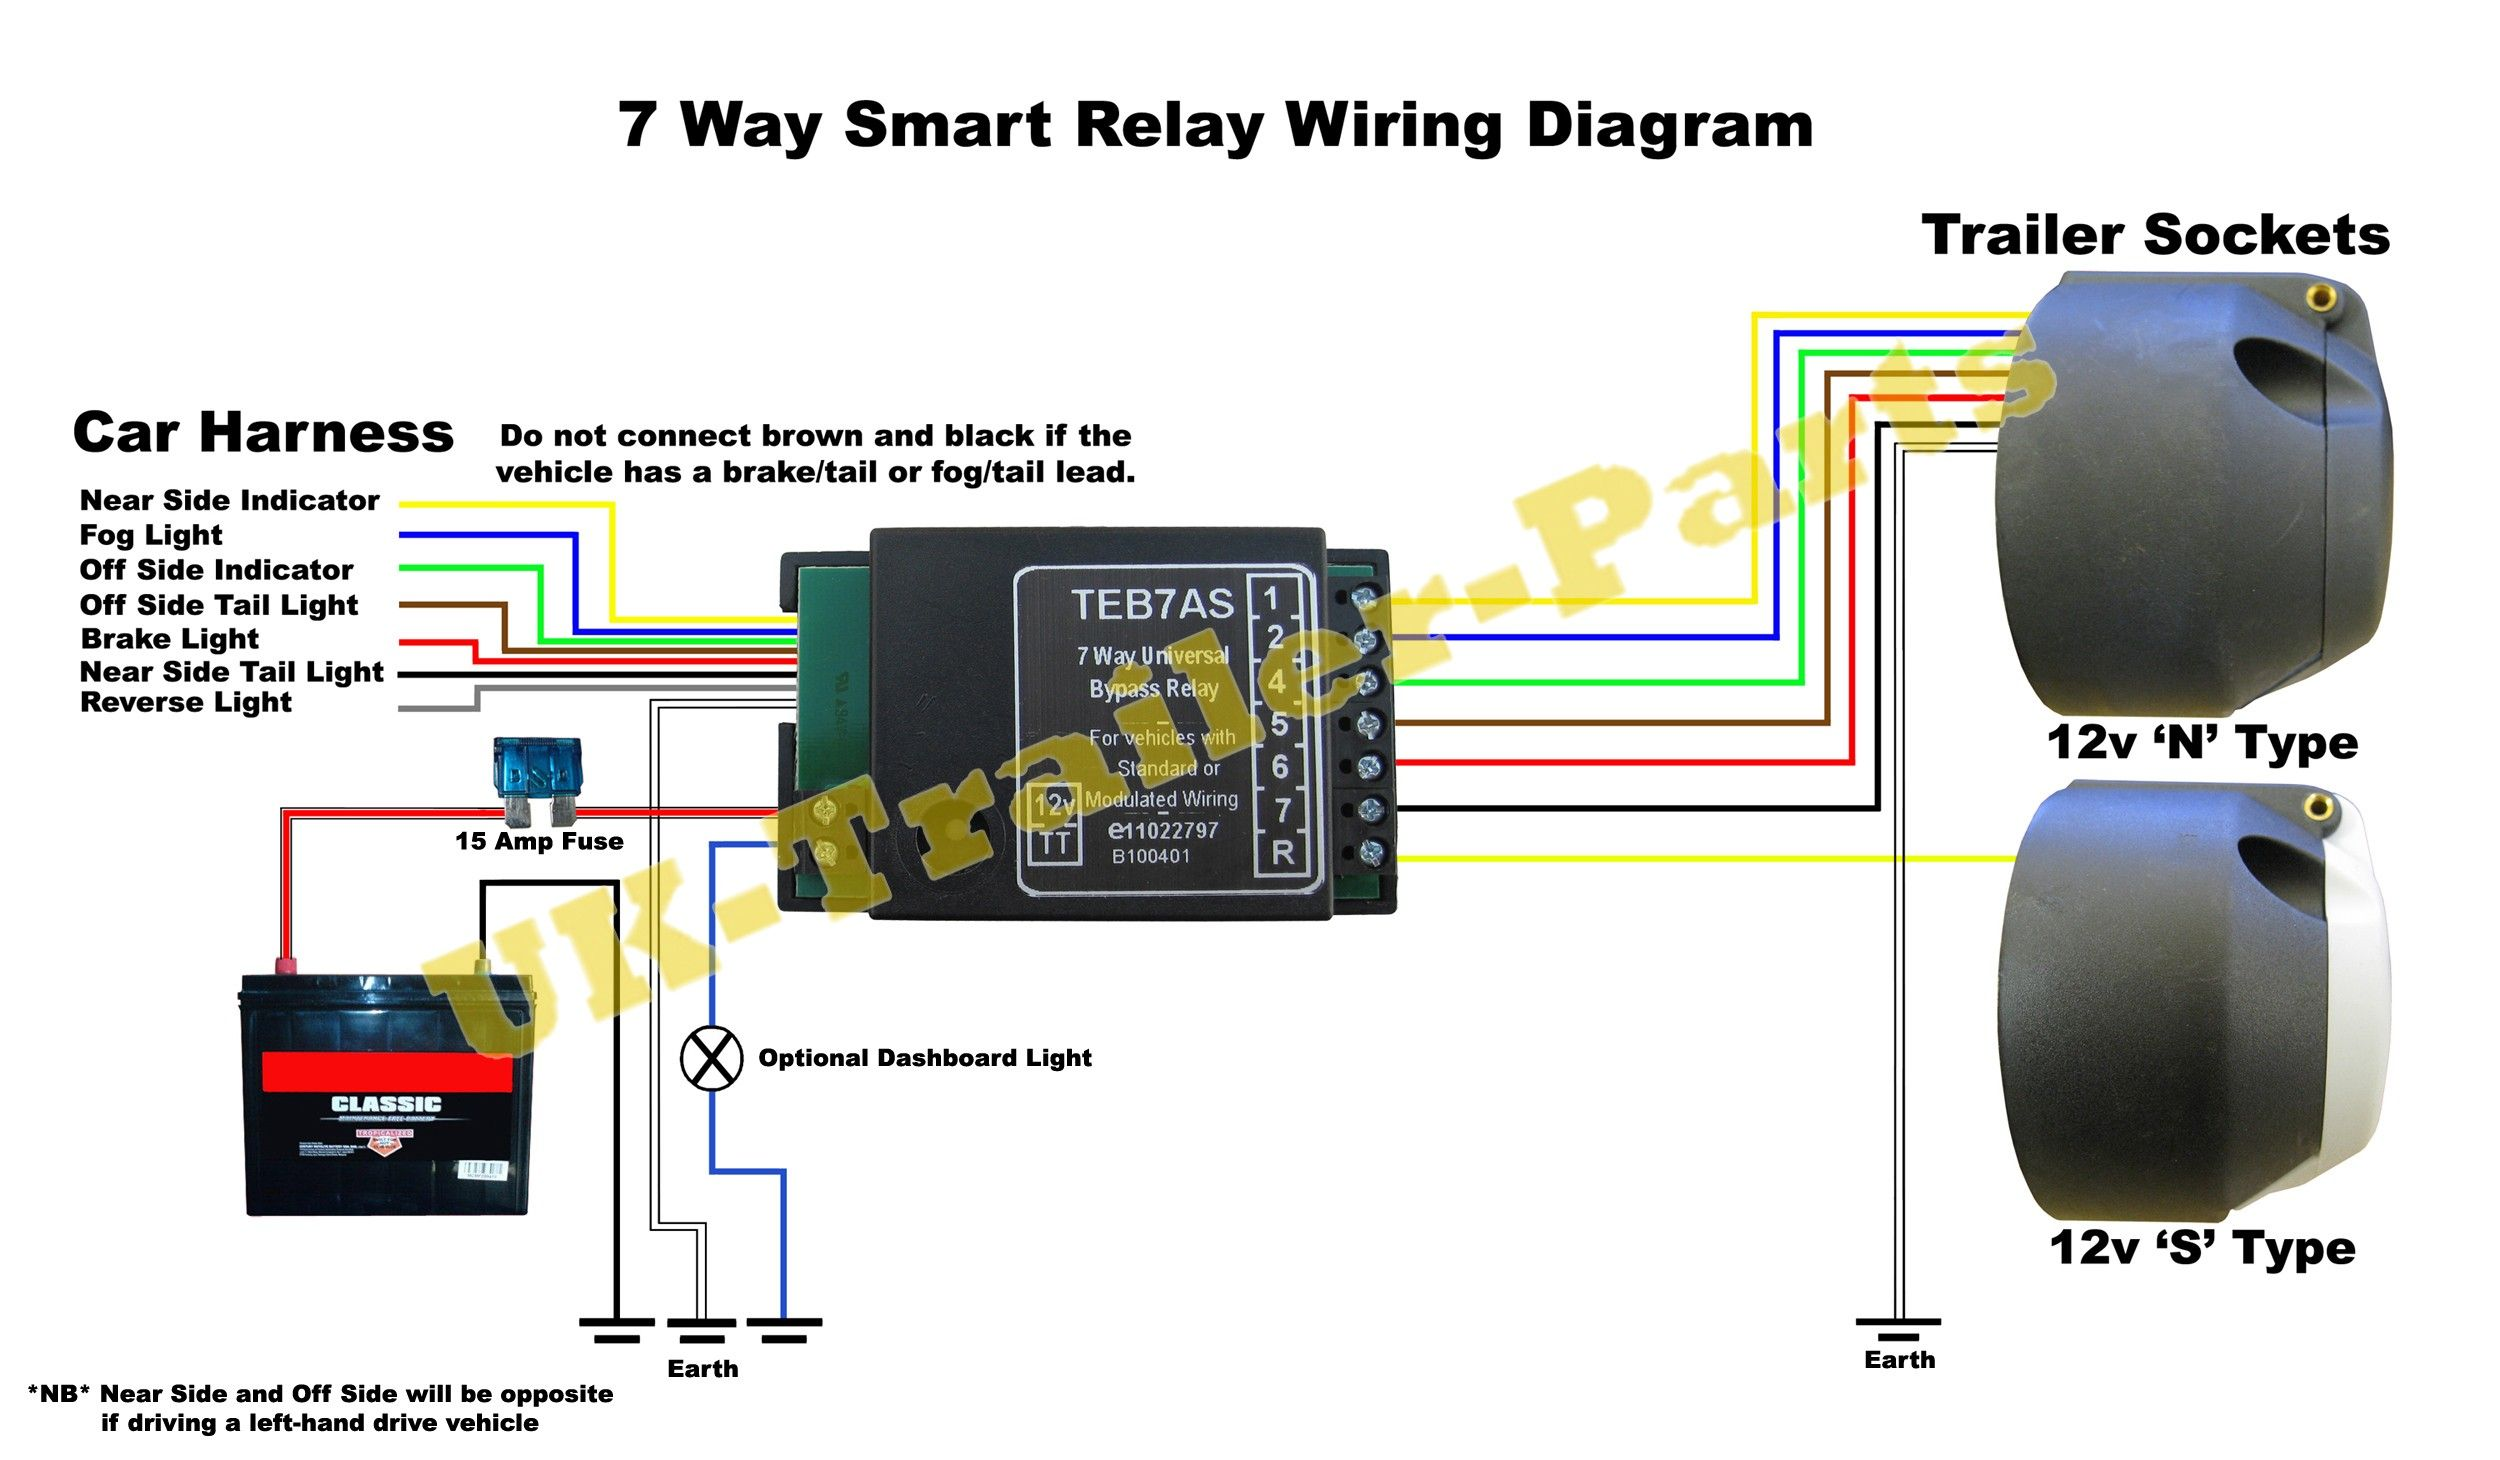 bypass relay wiring diagram lovely astra h wiring diagram towbar diagrams digramssample  astra h wiring diagram towbar diagrams